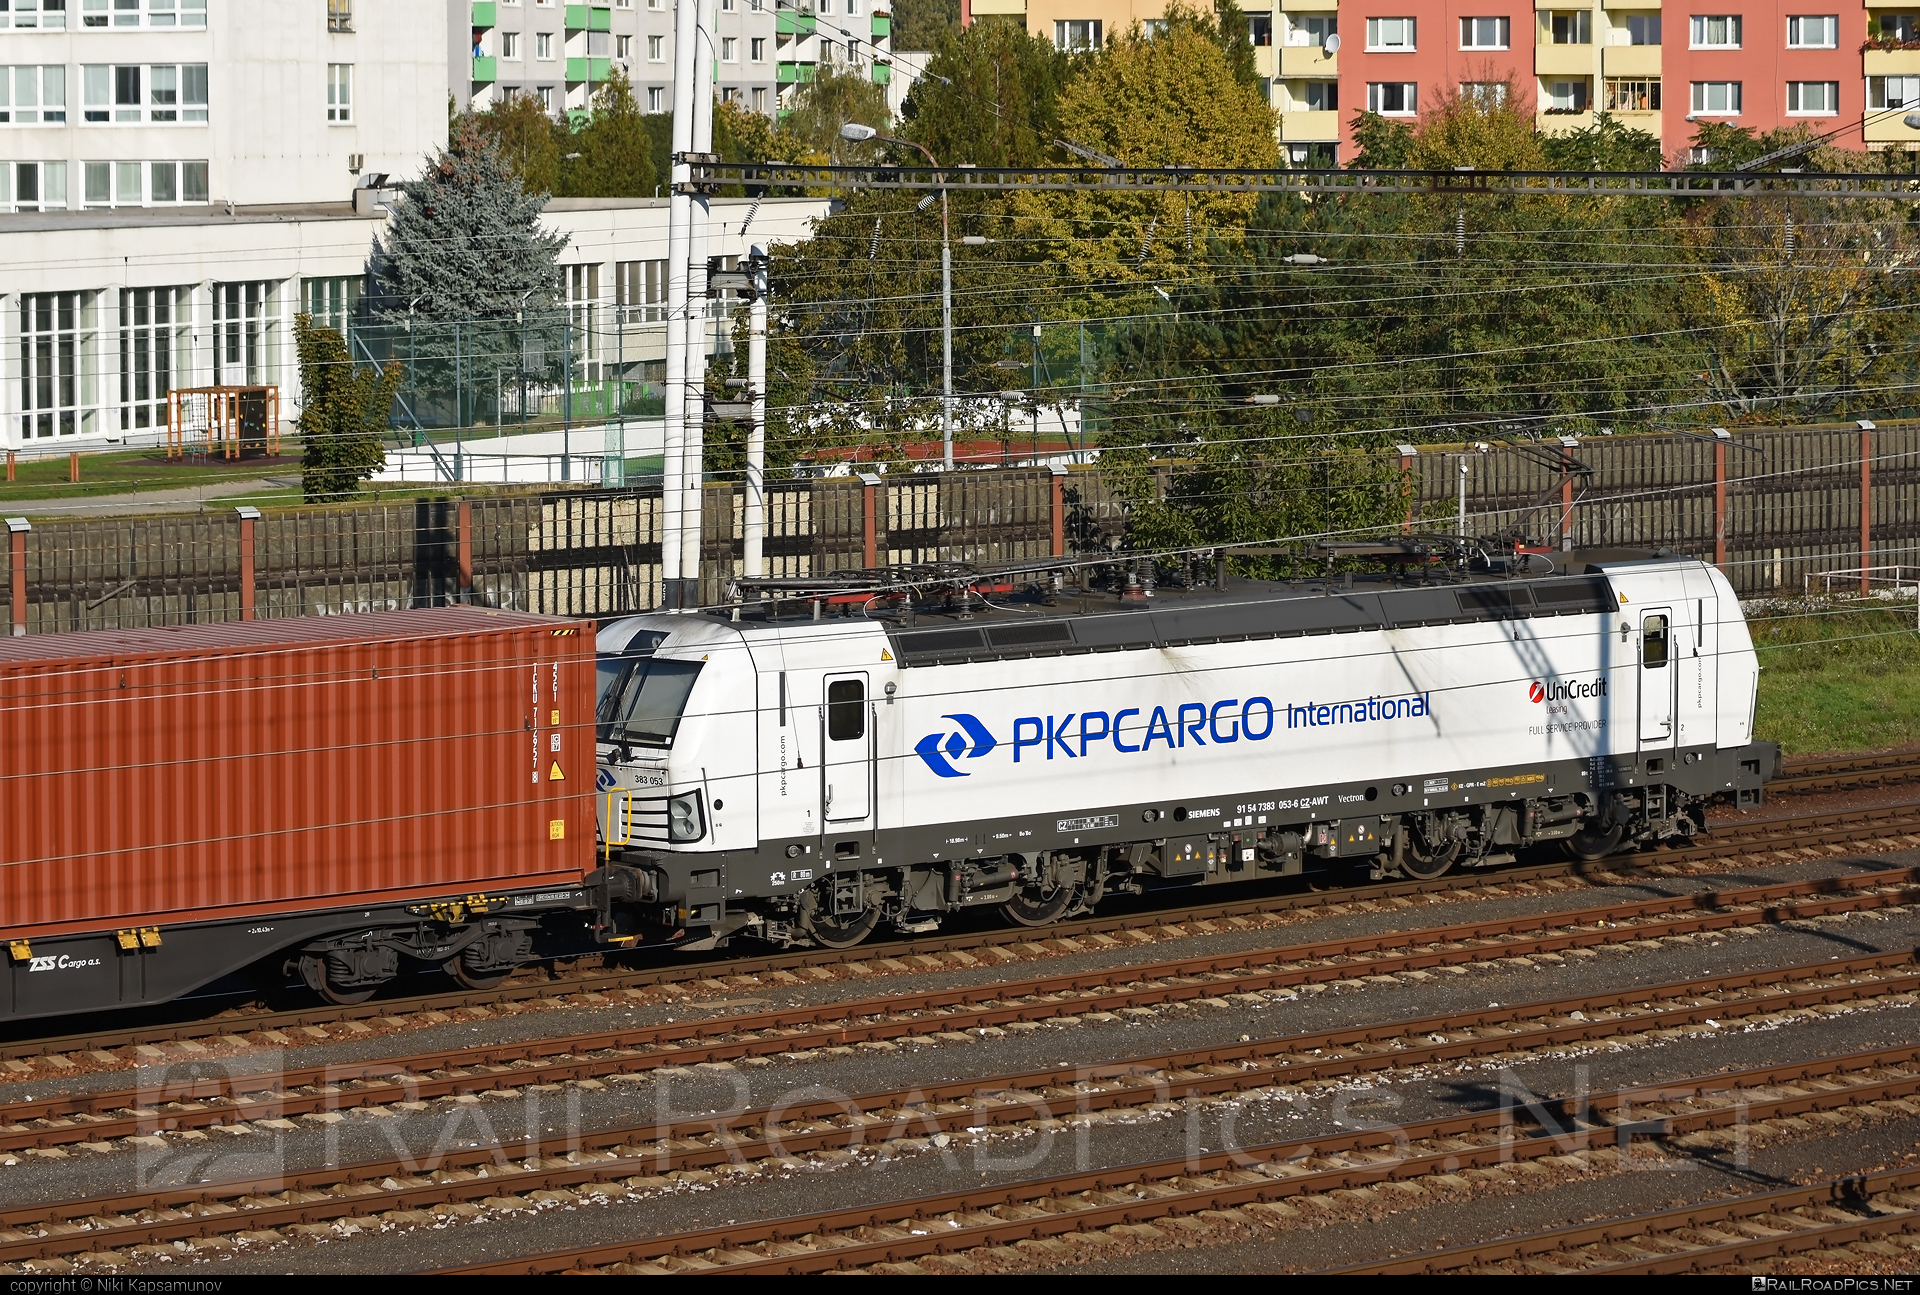 Siemens Vectron MS - 383 053 operated by PKP CARGO INTERNATIONAL a.s. #pkp #pkpcargo #pkpcargointernational #pkpcargointernationalas #siemens #siemensvectron #siemensvectronms #vectron #vectronms